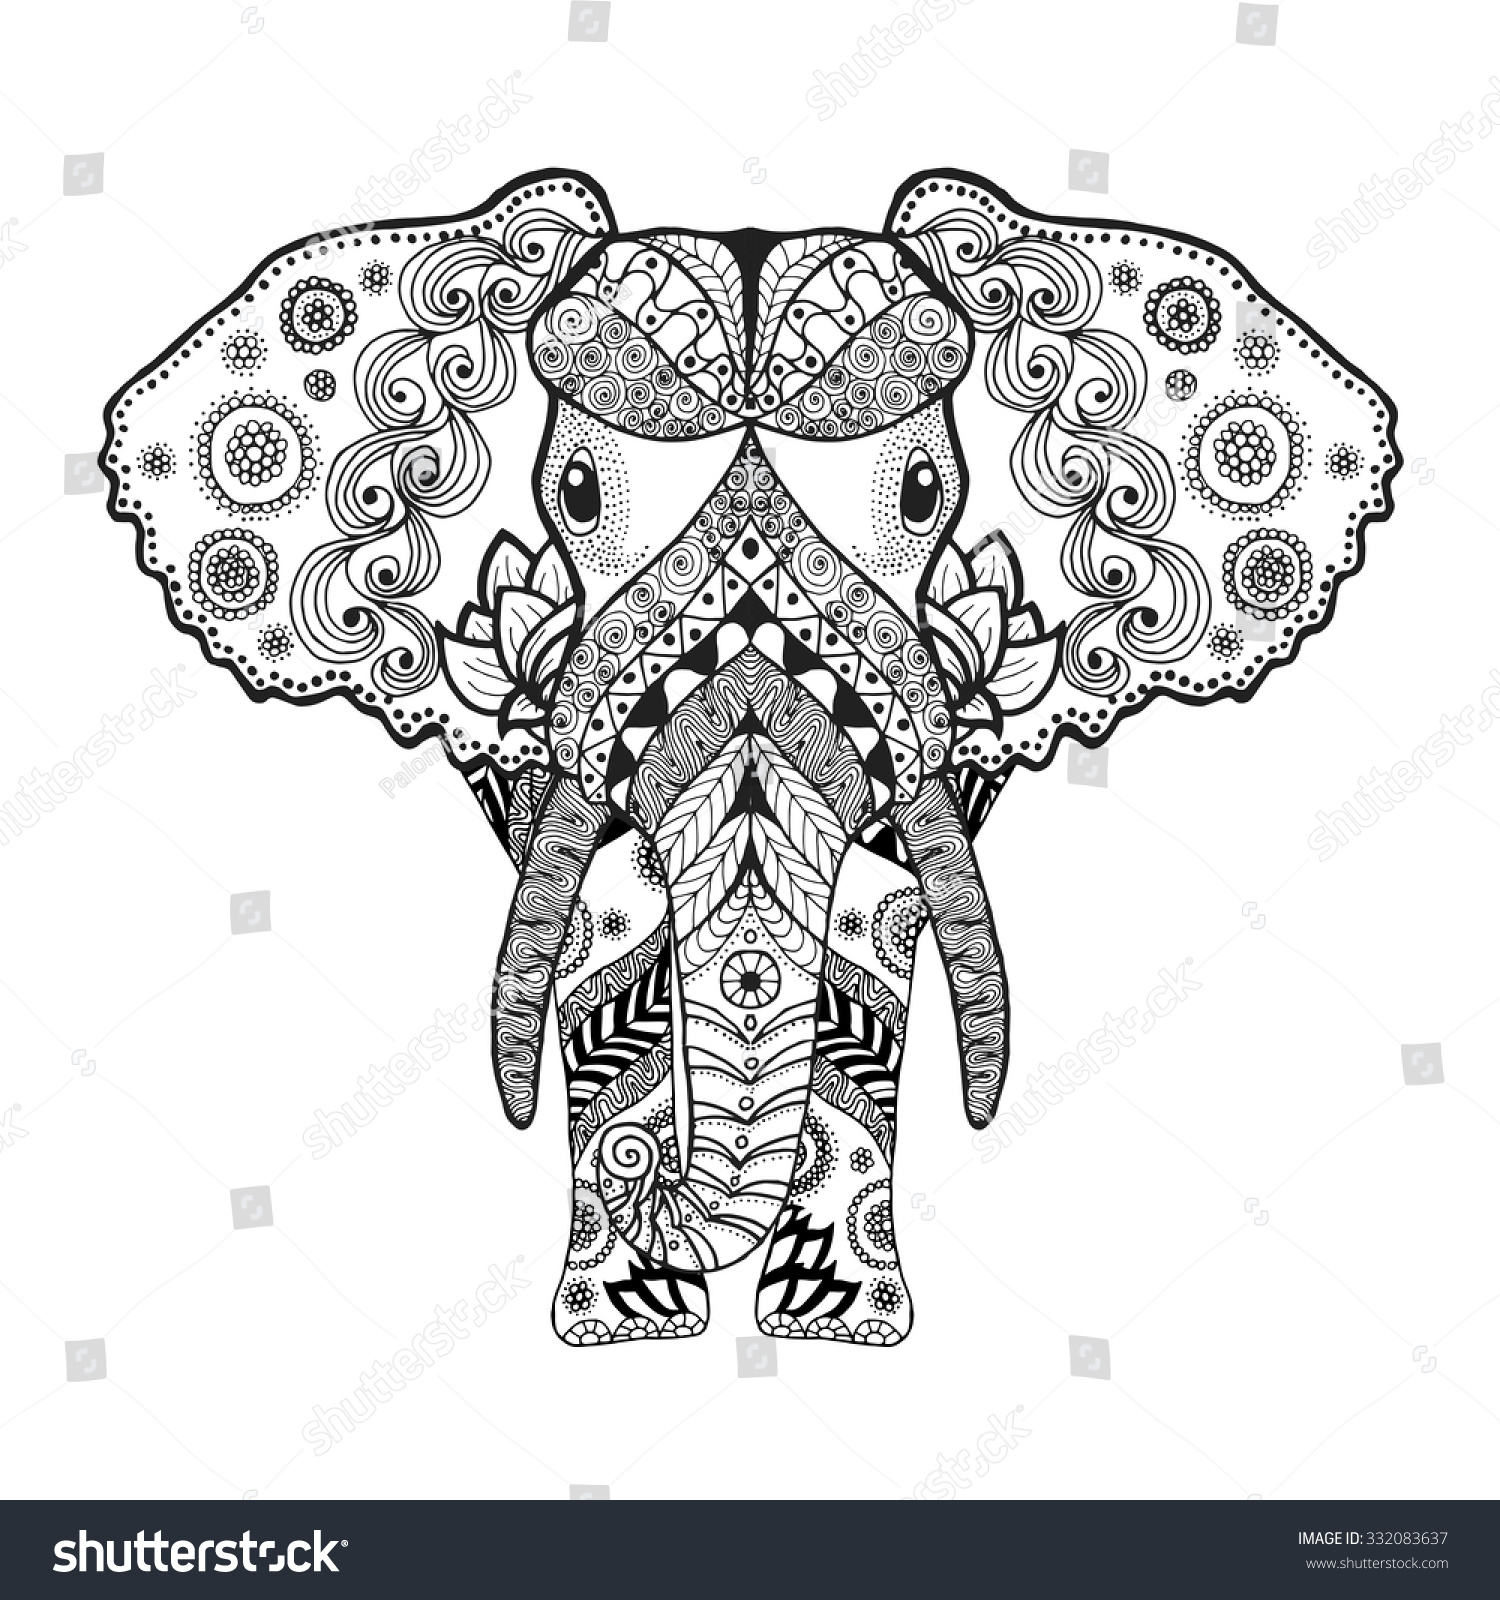 Anti stress colouring pages for adults - Adult Antistress Coloring Page Black White Hand Drawn Doodle Animal Ethnic Patterned Vector